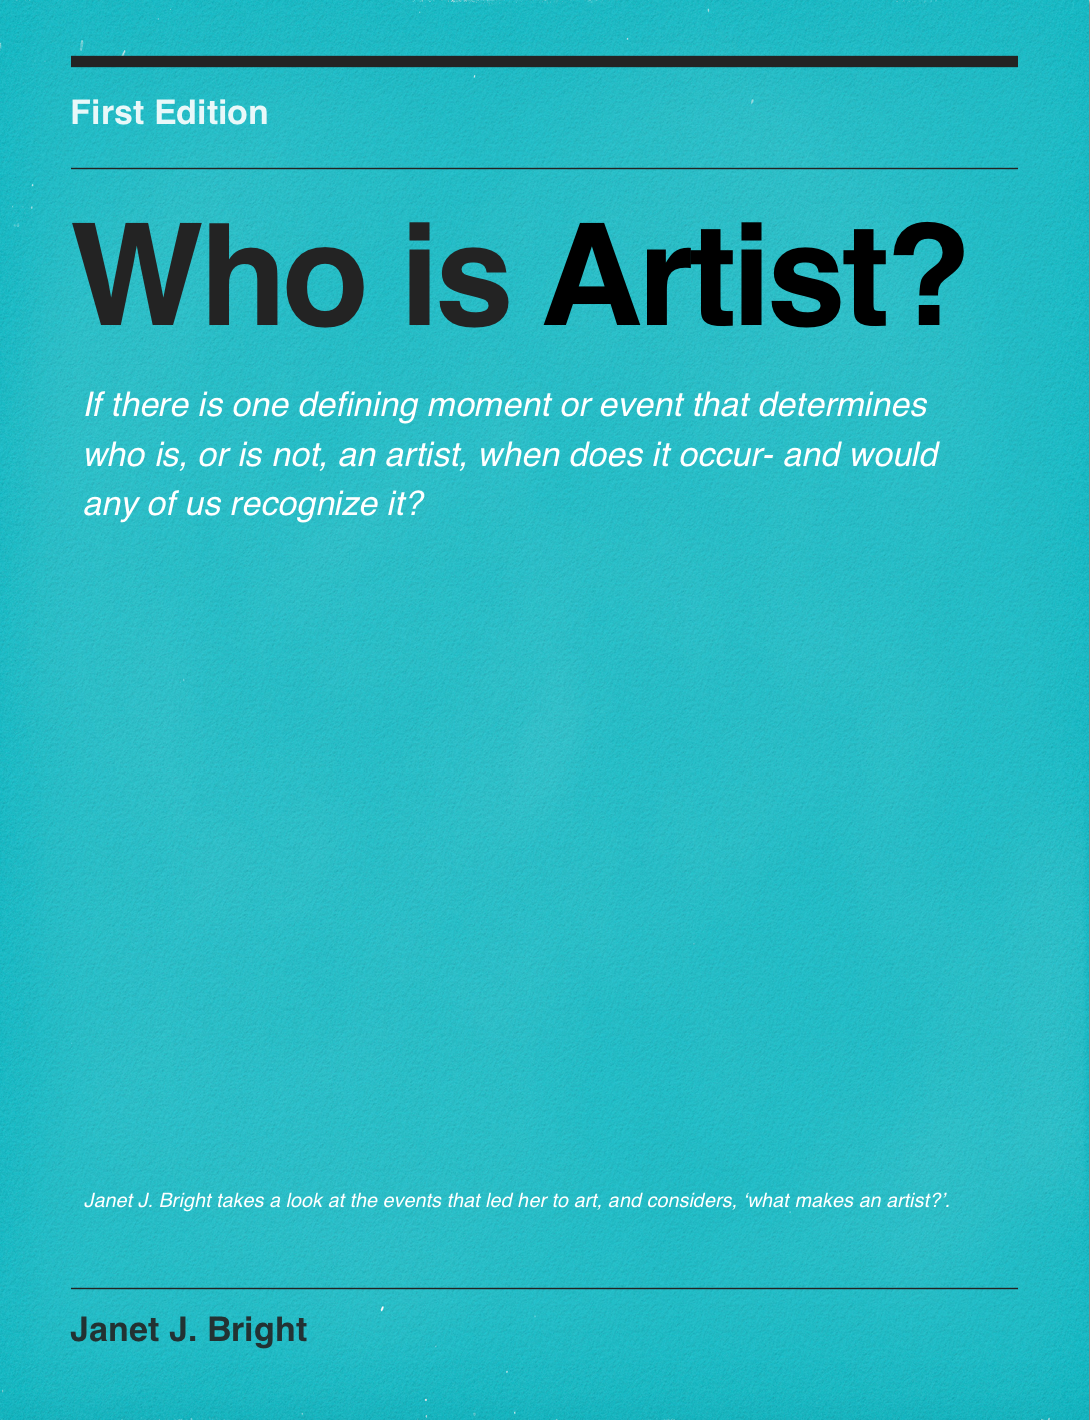 who is artist book free on iTunes